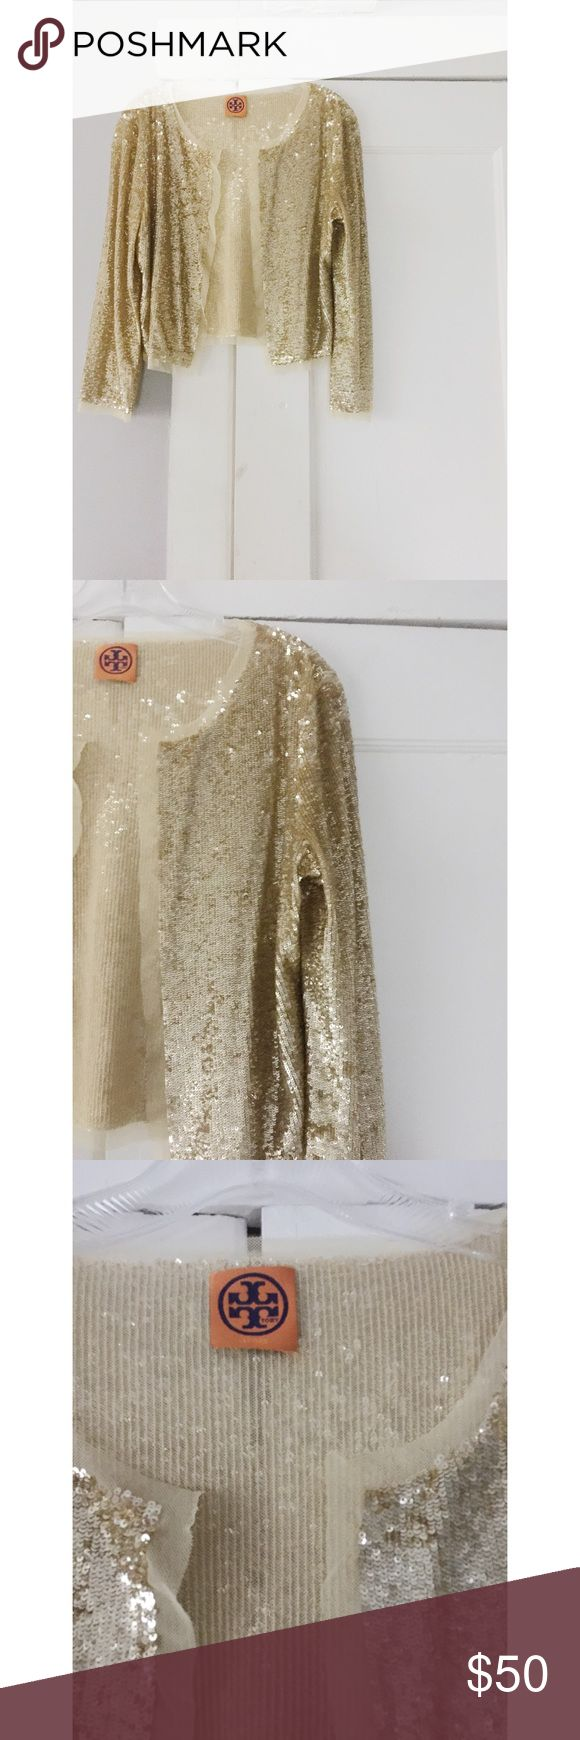 Tory Burch Sequin Cardigan Tory butch gold Sequin Cardigan.  All over gold sequins.  Perfect condition, none missing.   Women's size small. Tory Burch Sweaters Cardigans